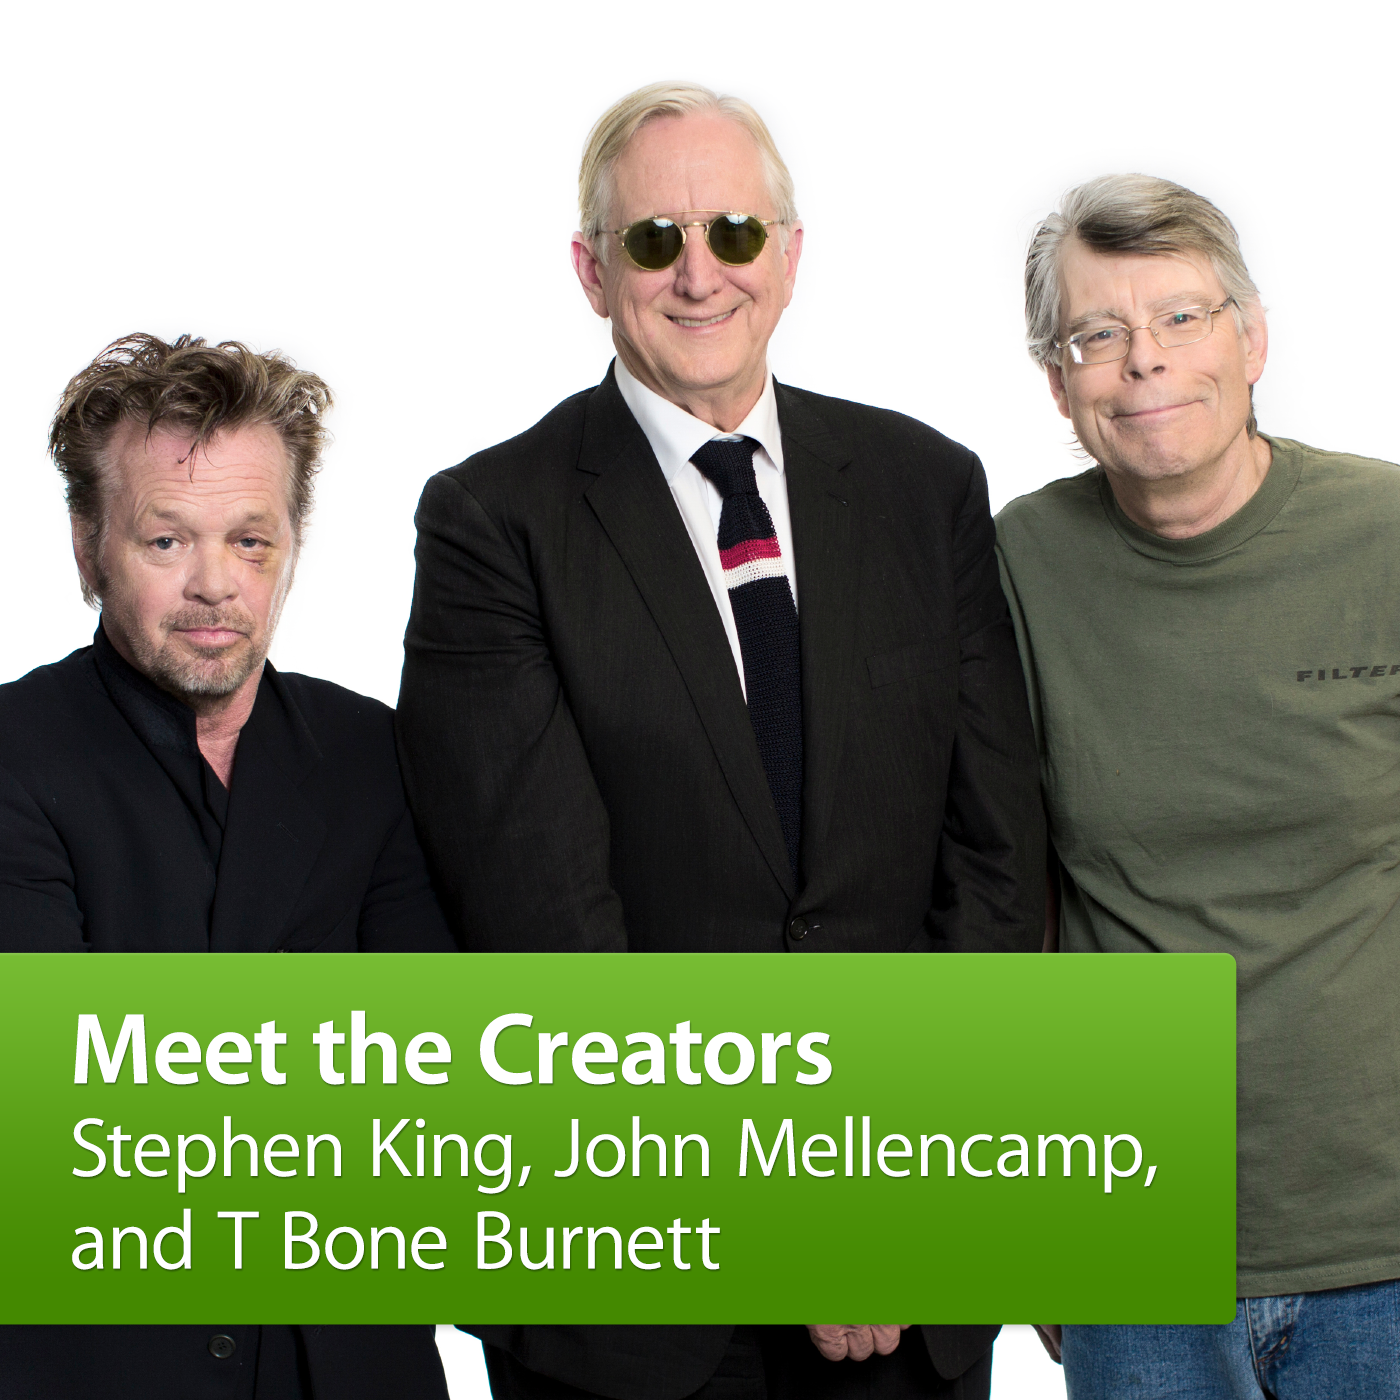 Stephen king john mellencamp and t bone burnett meet the creators stephen king john mellencamp and t bone burnett meet the creators by events at the apple store on apple podcasts m4hsunfo